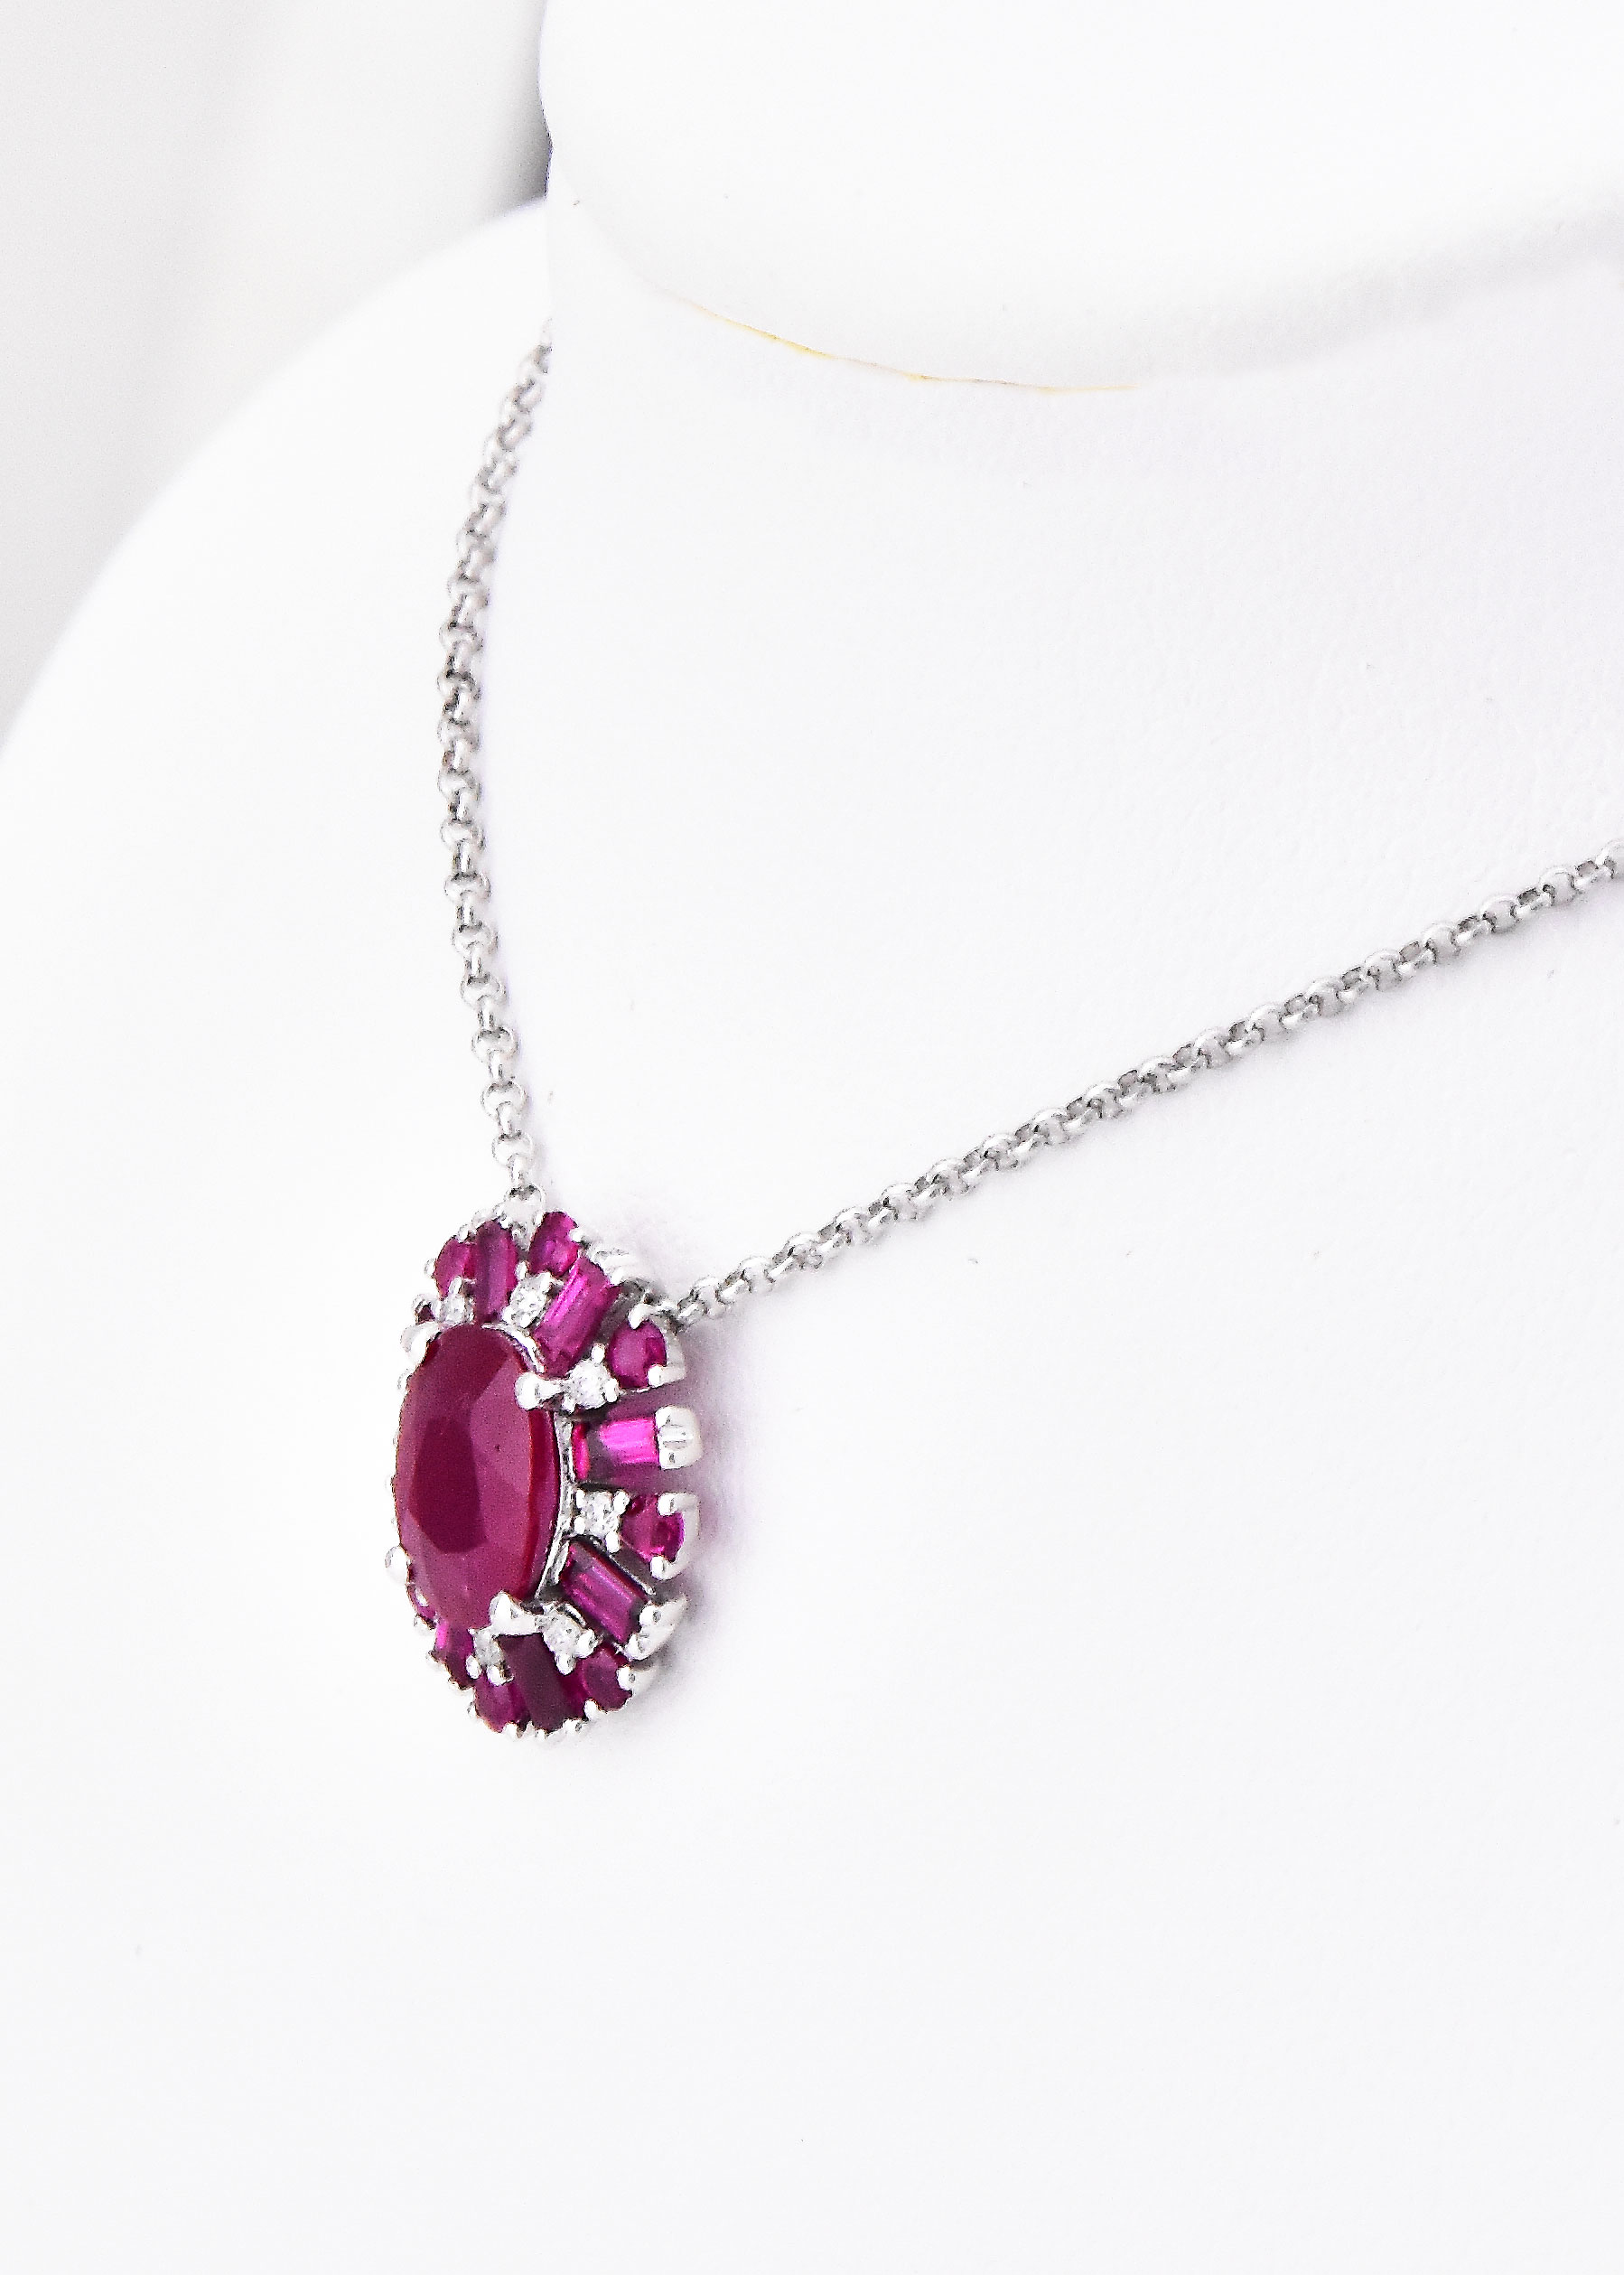 Over 1.50 Carats Total Weight Ruby & Diamond Necklace